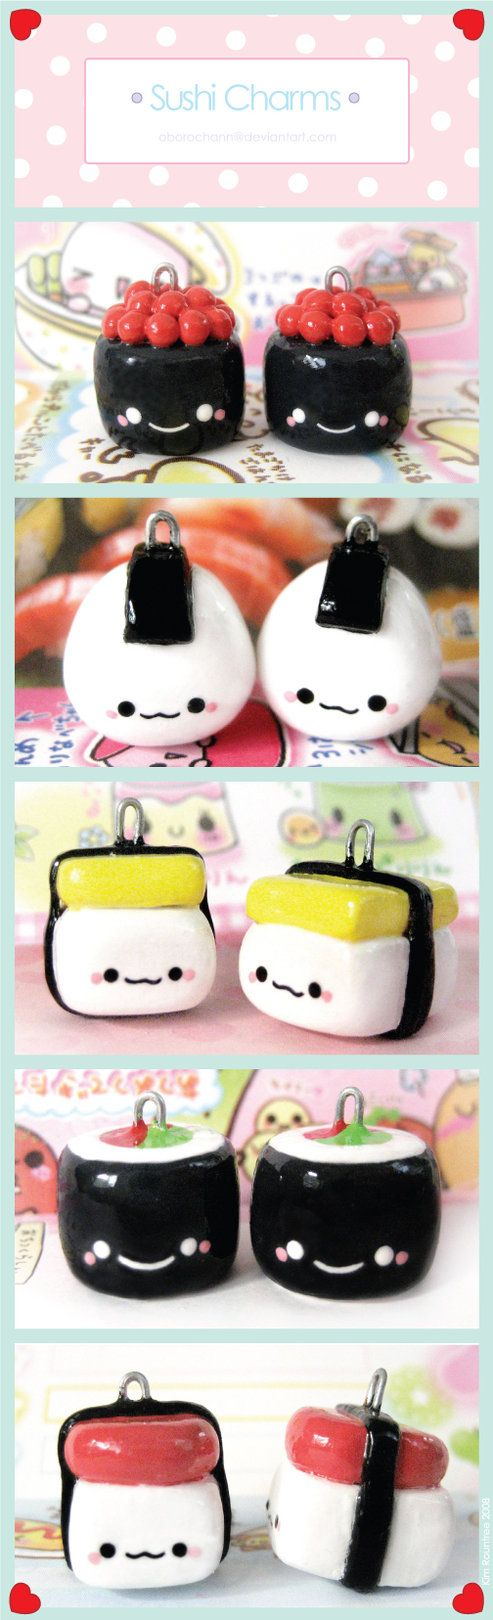 Sushi Charms by ~Oborochann on deviantART